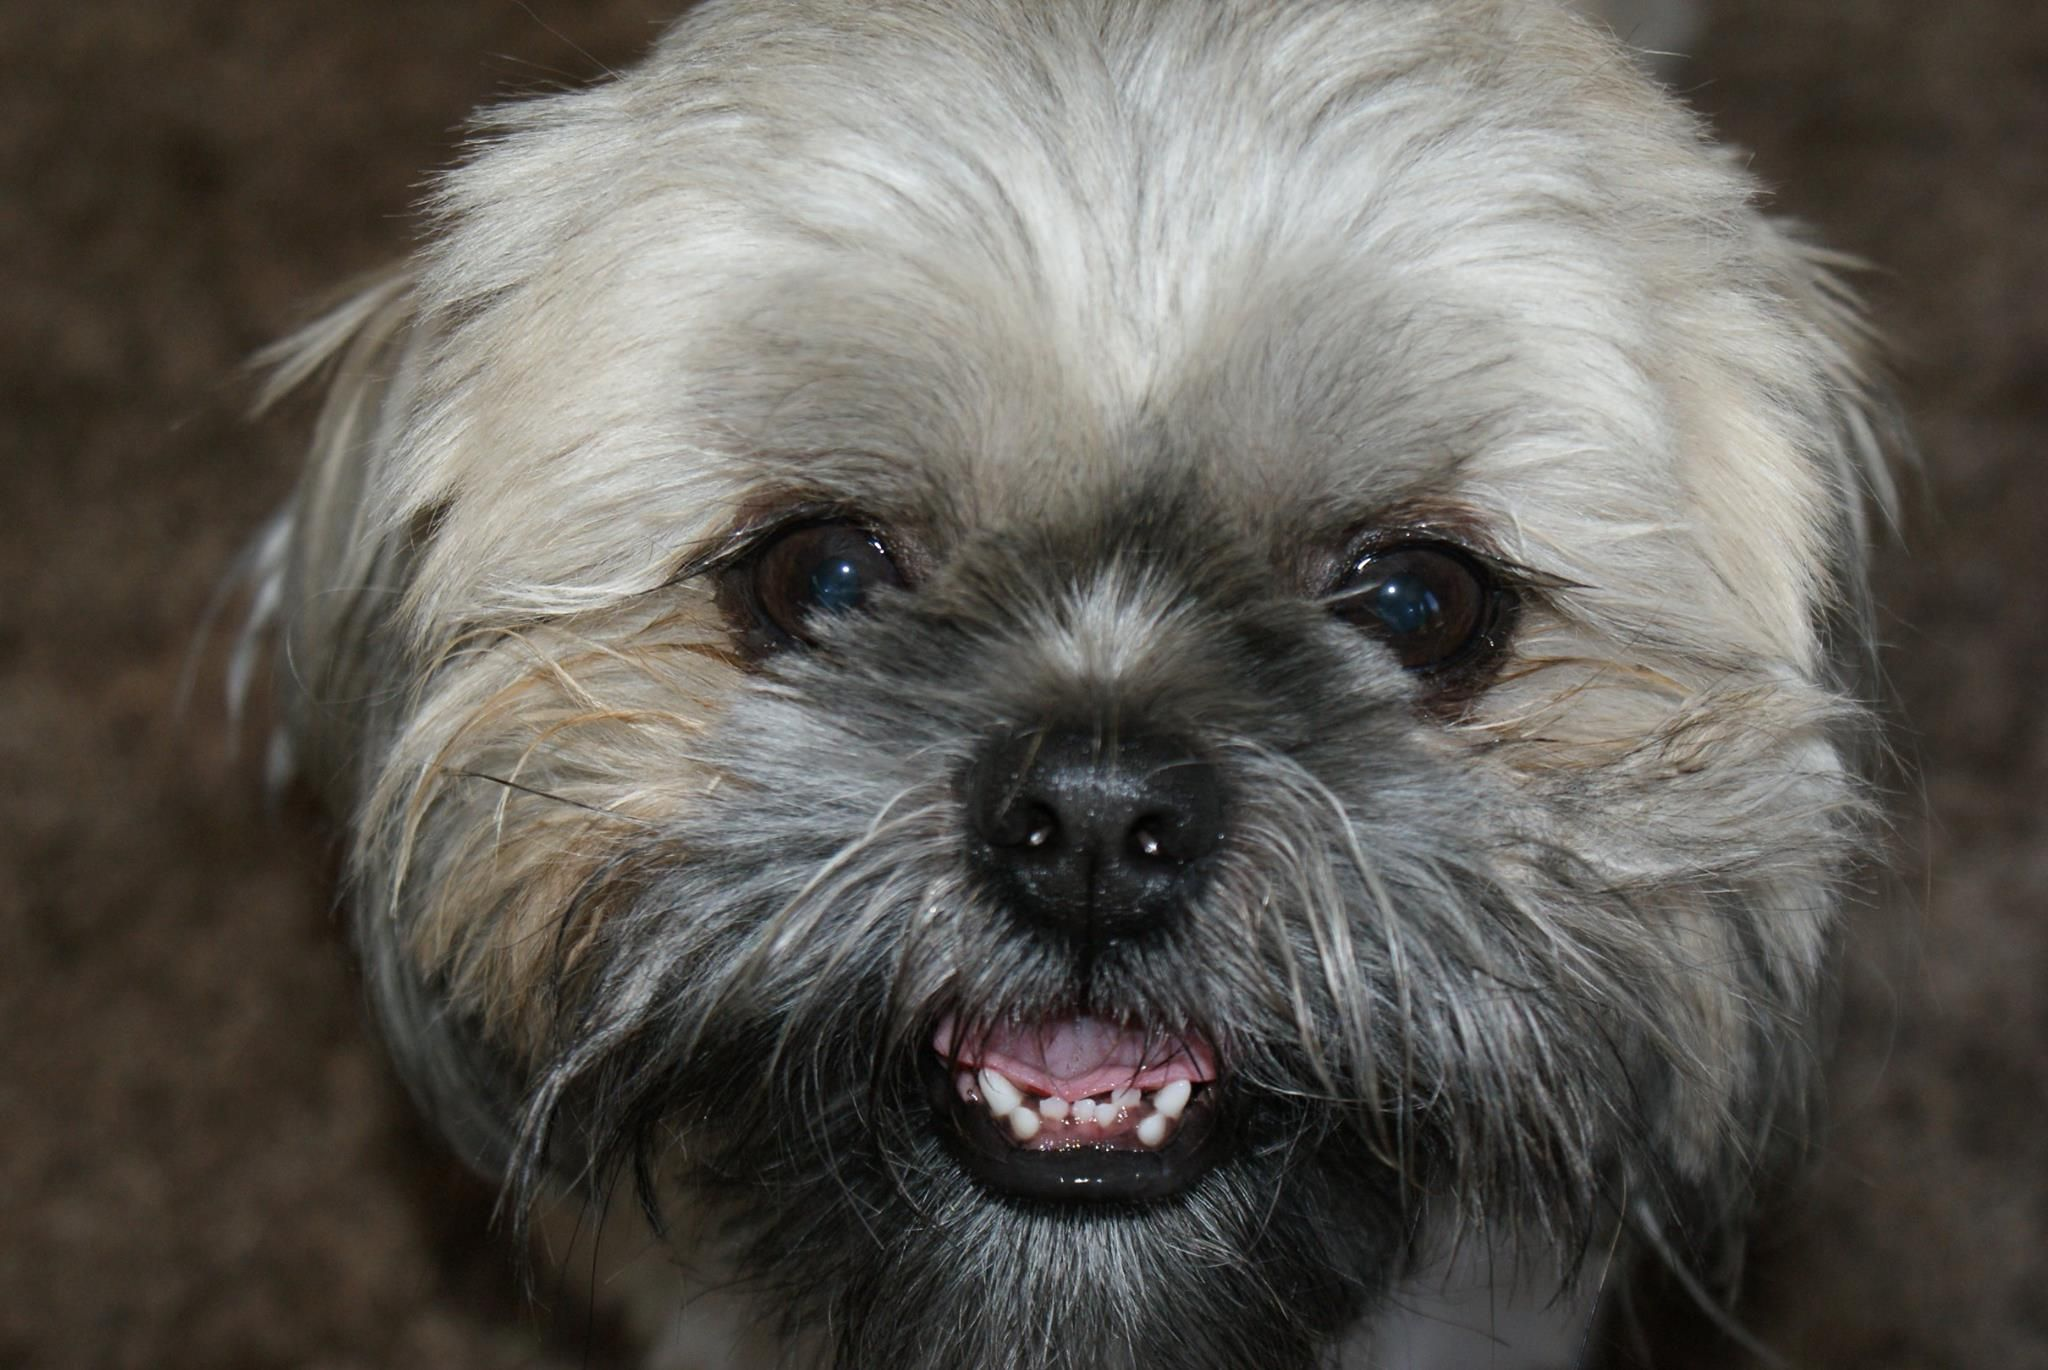 Mom Says I Need Braces Bearboy Our Shihtzu Who S 9 Yrs Old